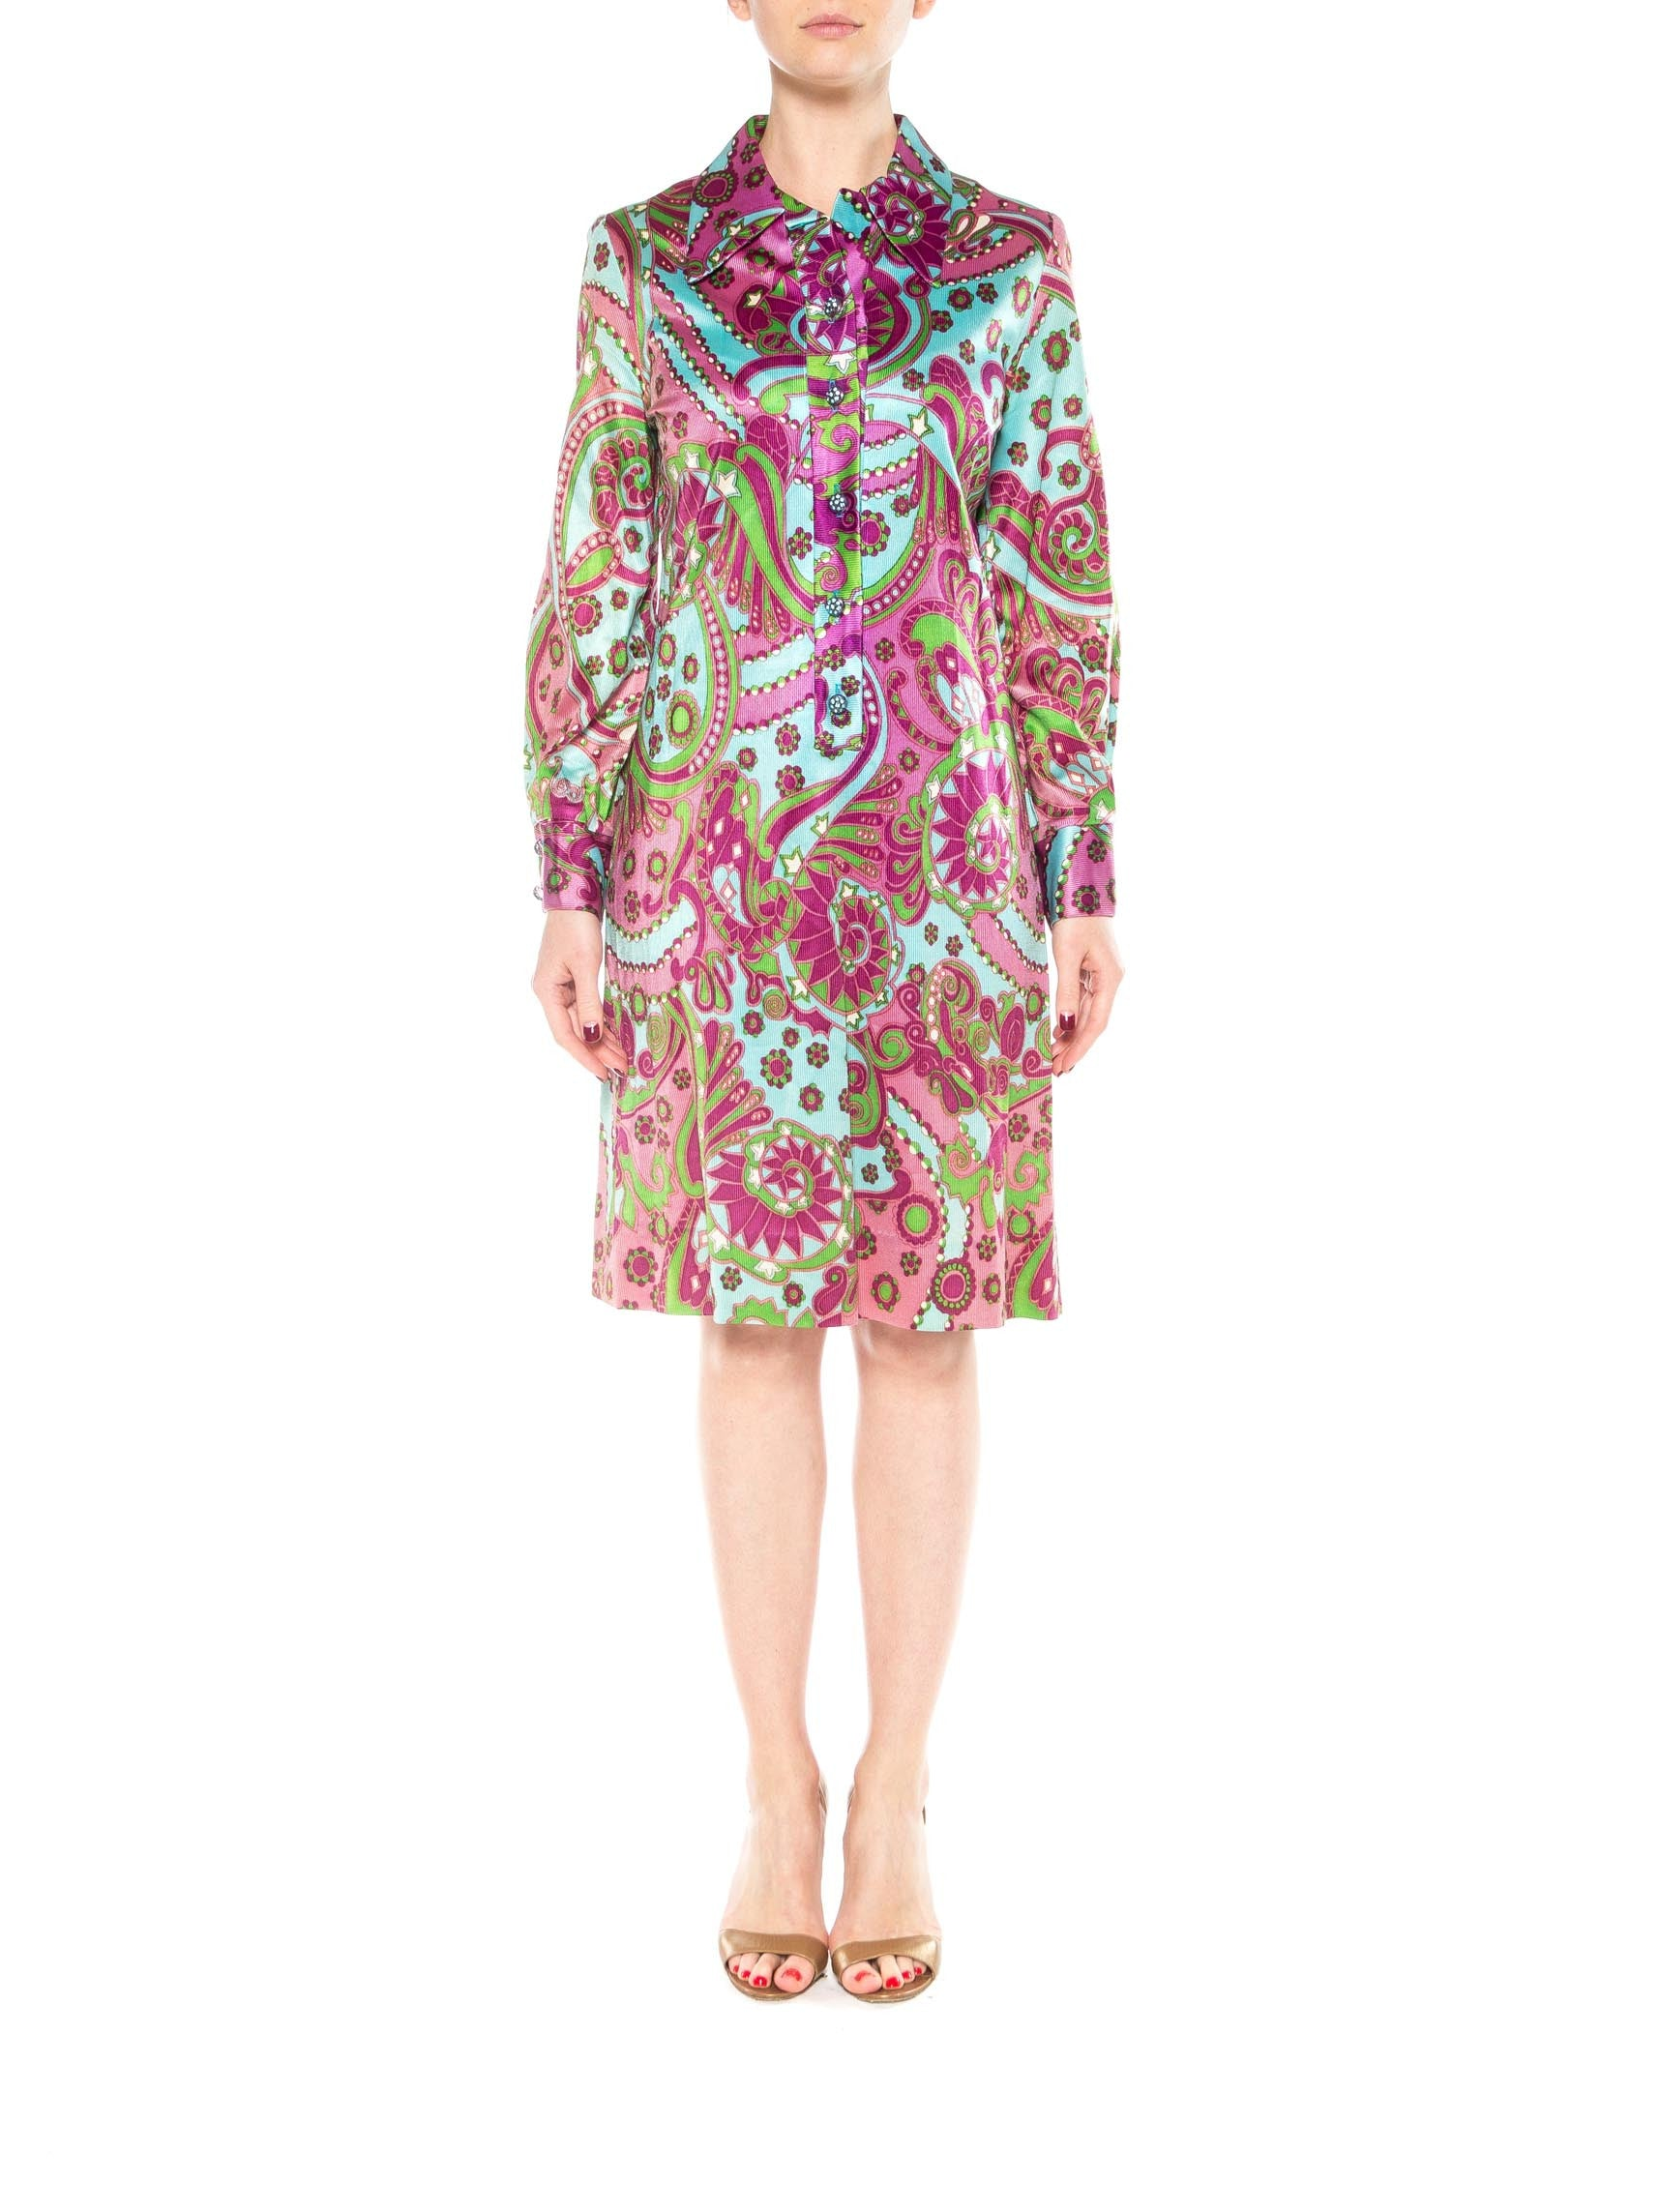 1960s Psychedellic Print Shirt Dress